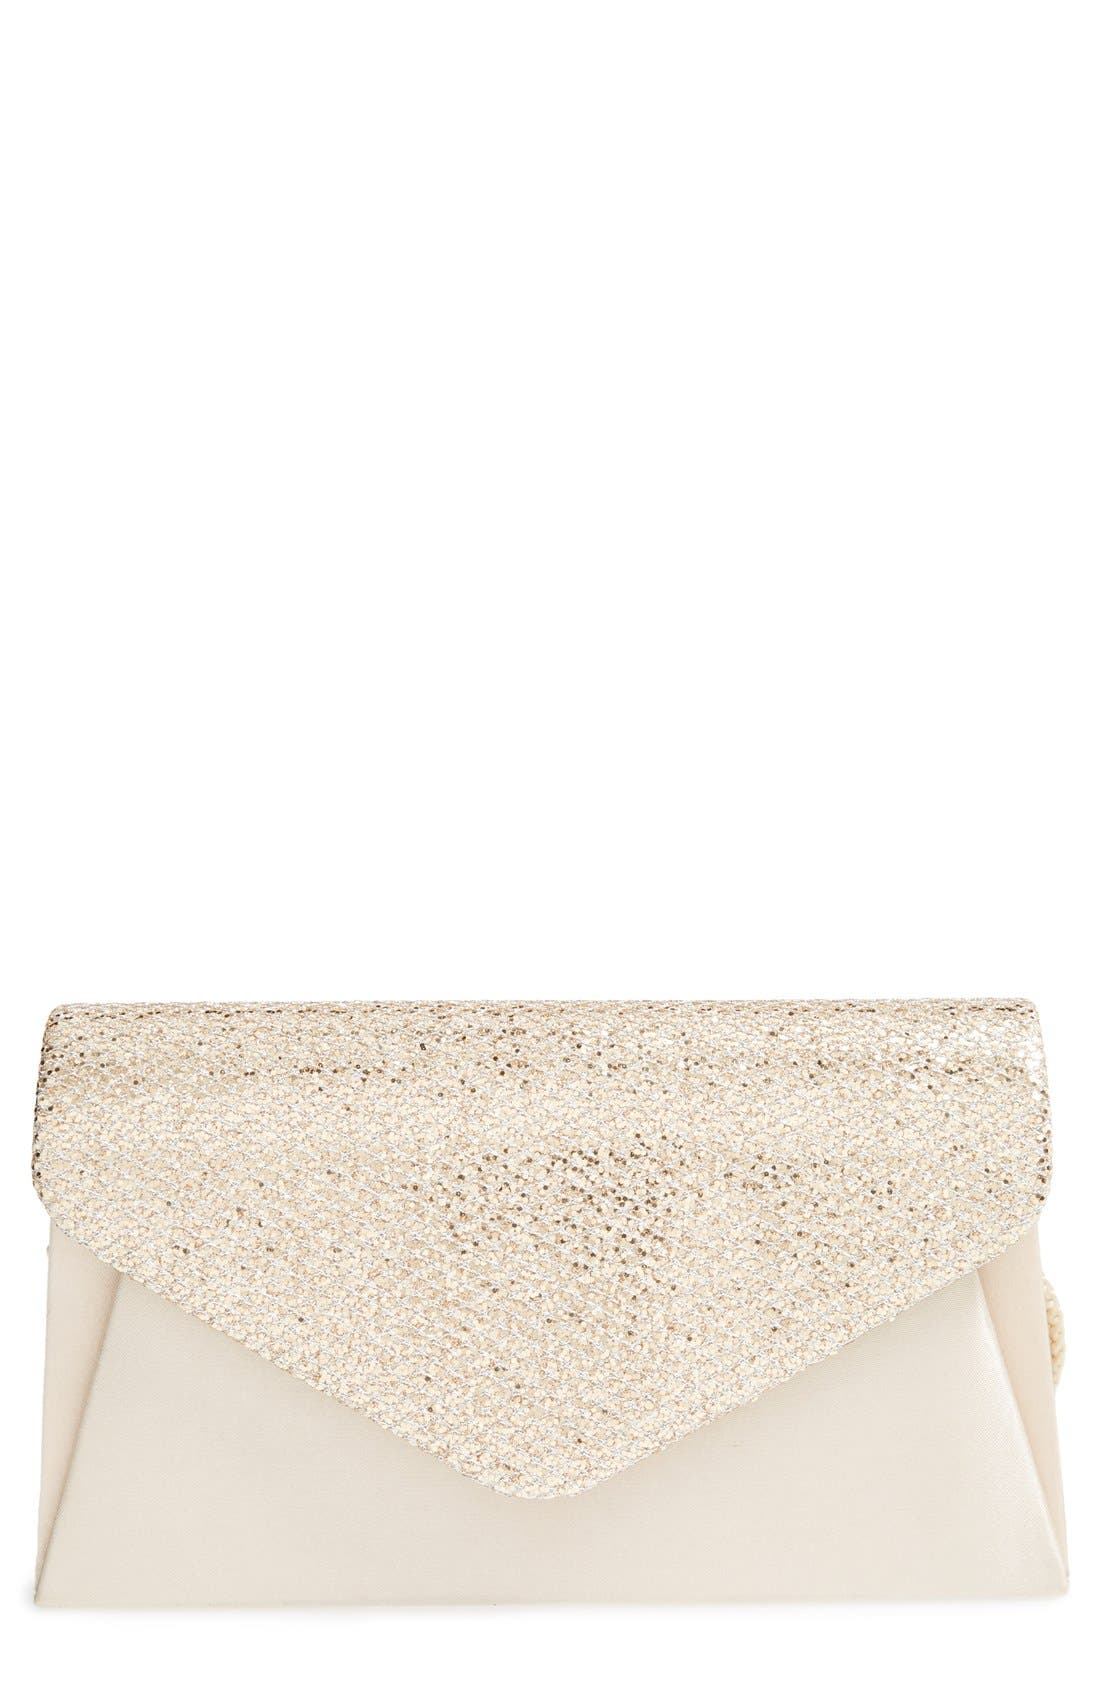 Alternate Image 1 Selected - Jessica McClintock 'Glitz' Envelope Clutch